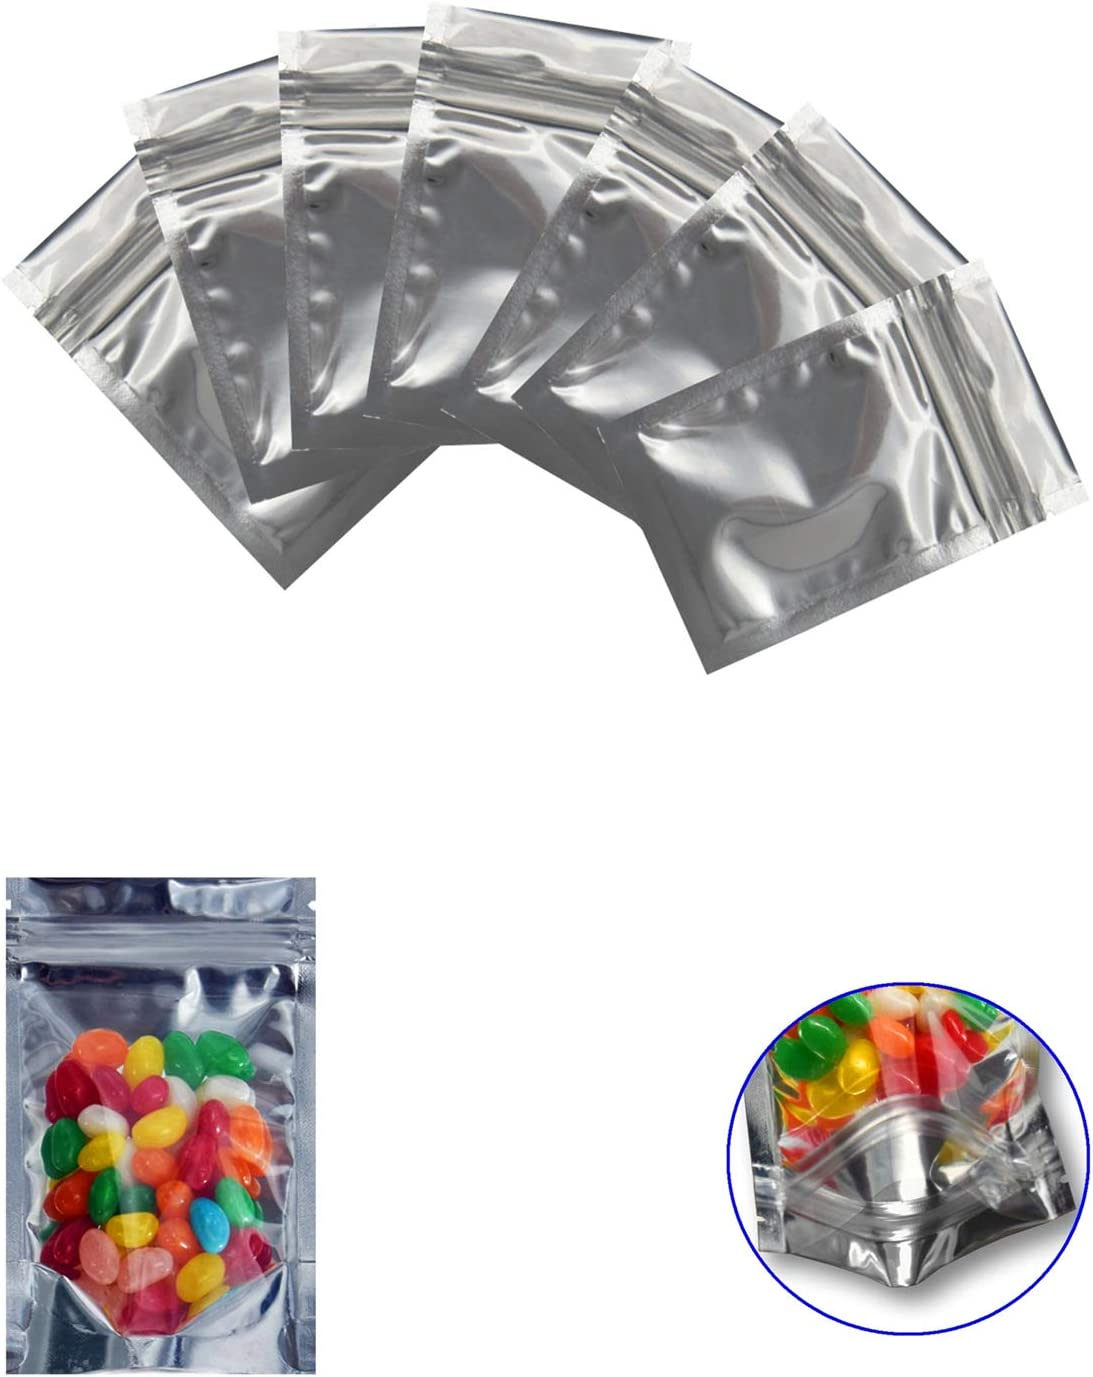 Xinhongo 200 Pack Resealable Mylar Bags Smell Proof Pouch Aluminum Foil Packaging Plastic Ziplock Bag,Clear Zip lock Food Safe Small Mylar Storage Bags For Bulk Candy,Jewelry,Snack Food,2.8x5.1 inch